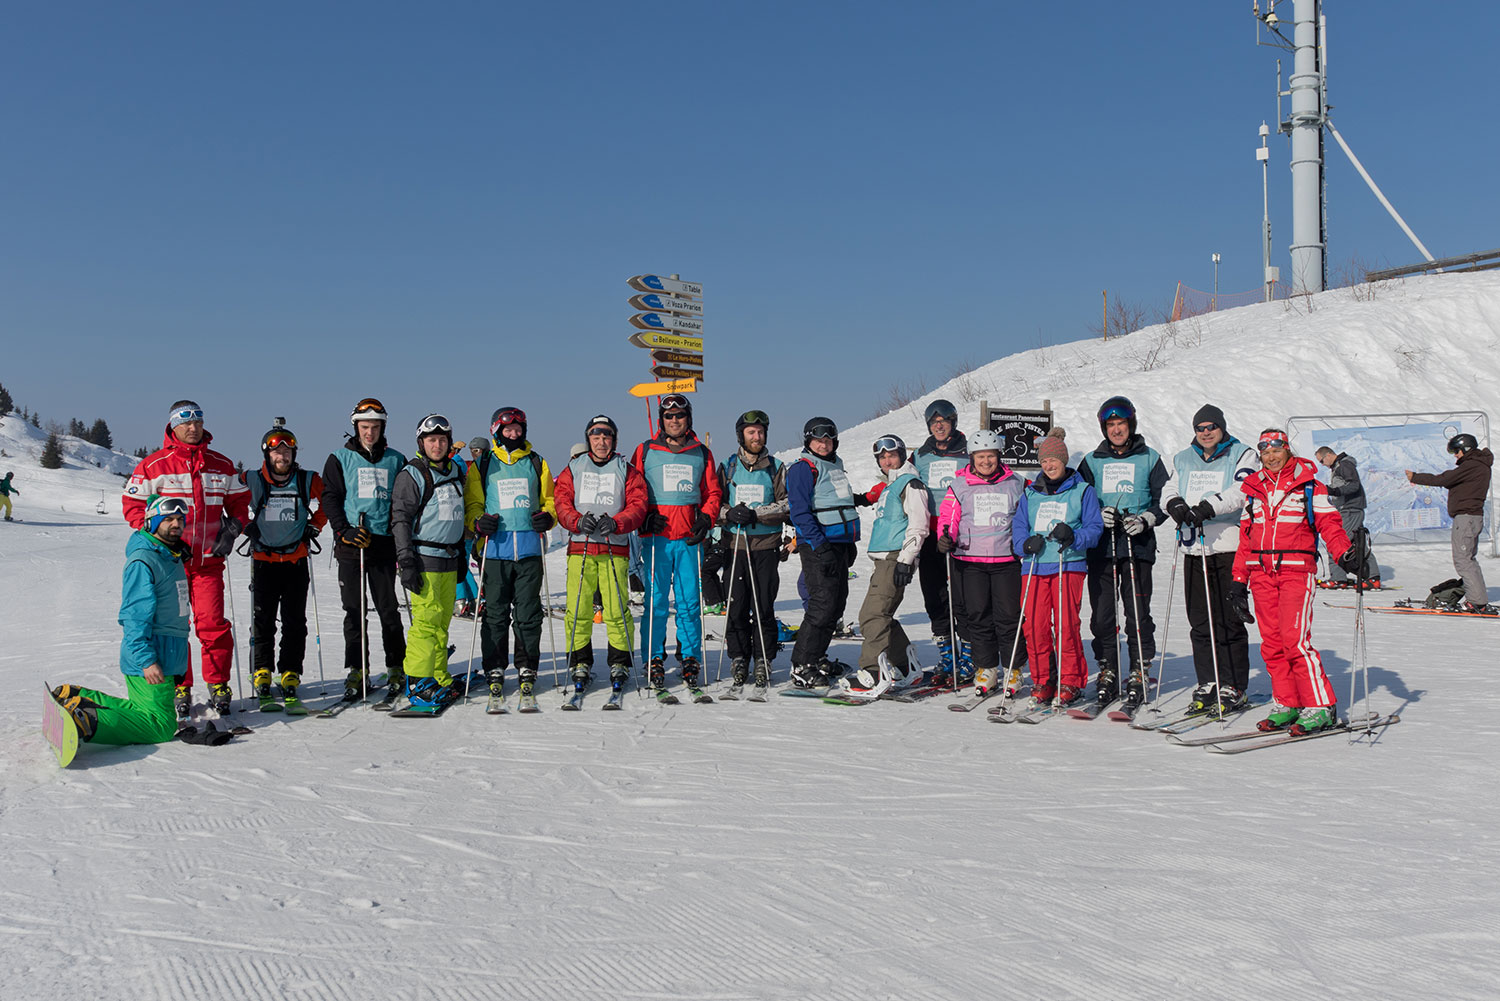 All 15 participants and there two lovely guides at the top of the Prarion lift.